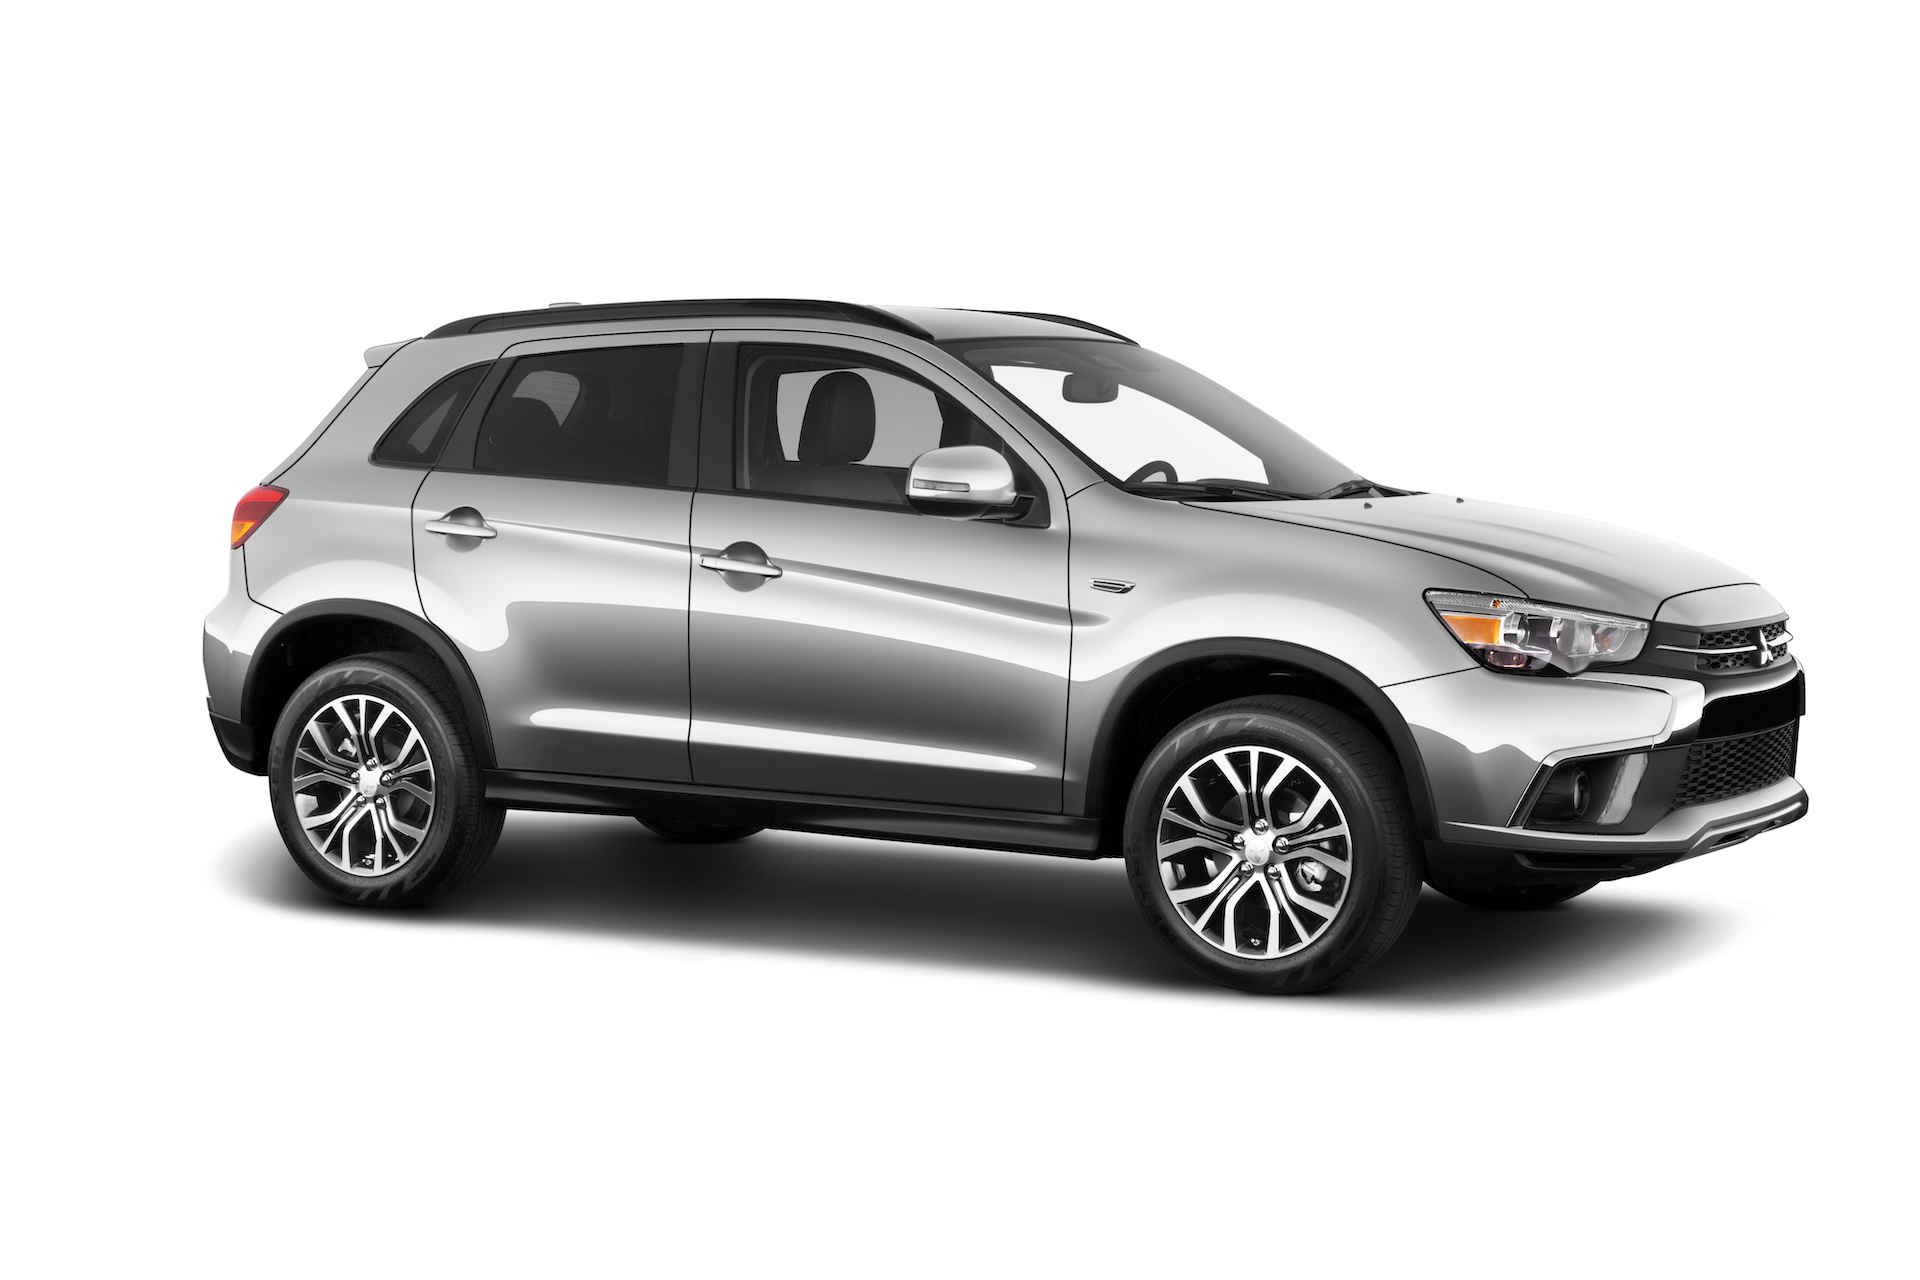 2020 Mitsubishi Outlander Sport Updated Styling And Infotainment System Release Price >> 2020 Mitsubishi Outlander Sport Review Ratings Specs